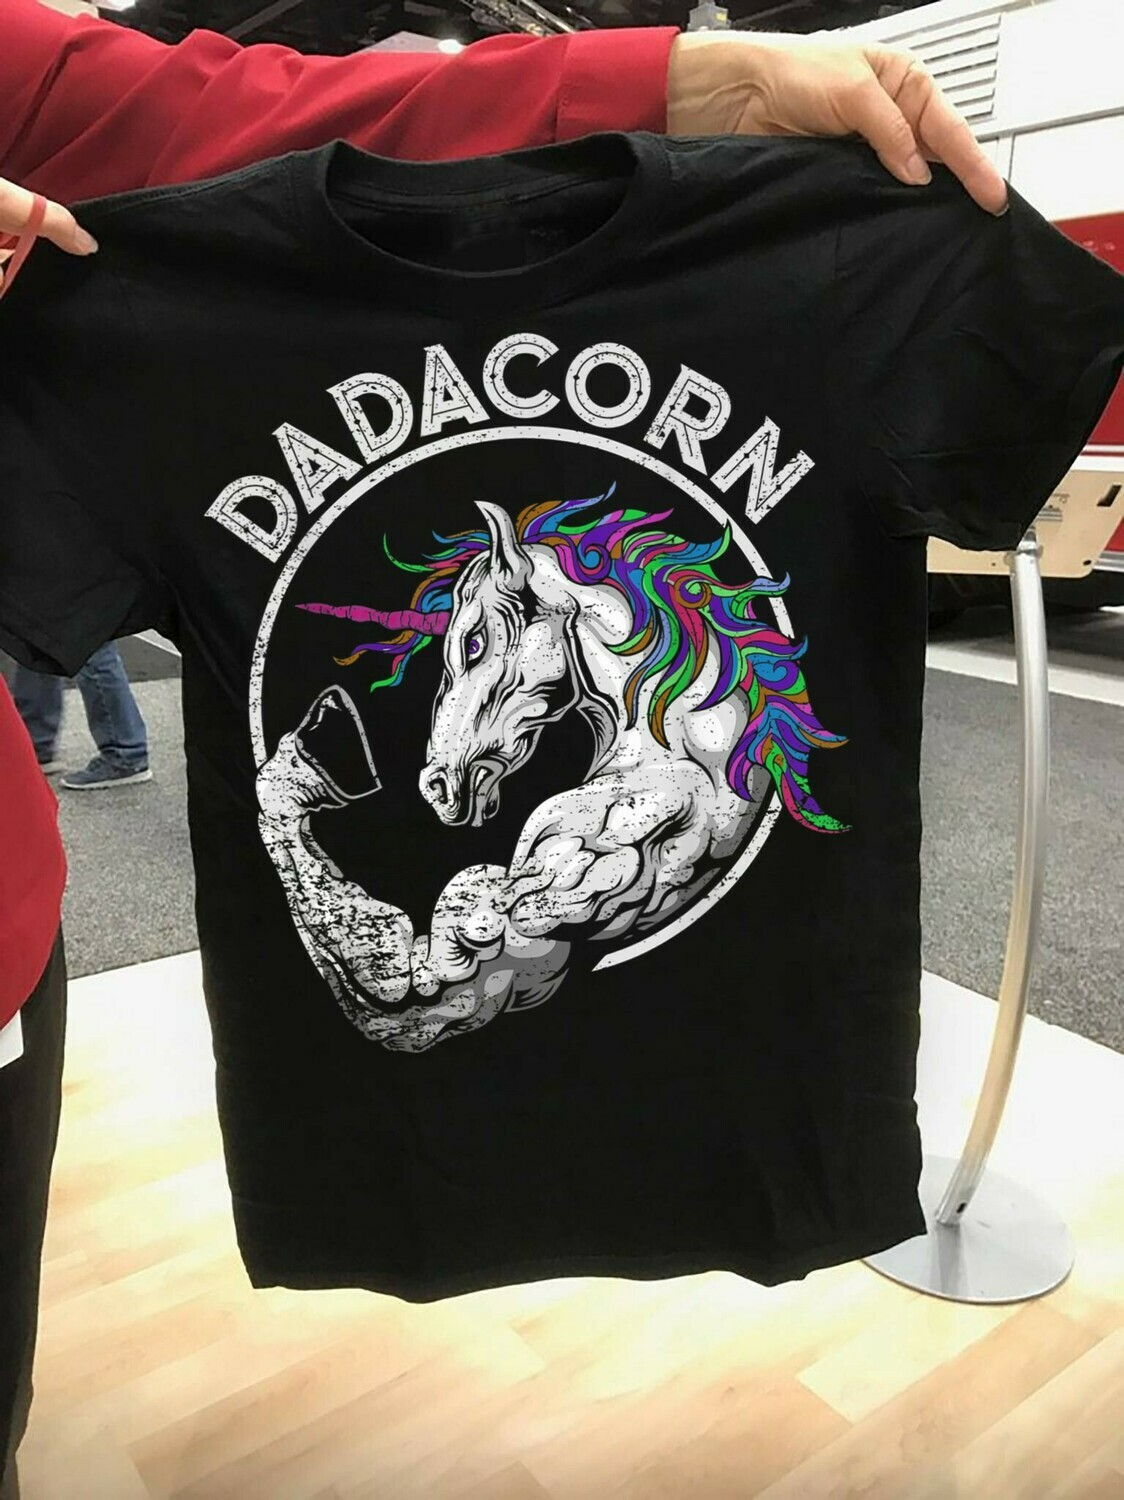 Dadacorn Dadicorn Daddycorn Proud Dad Of the Unicorn gift for him Dad Papa Baby grandpa Father's Day T-Shirt Hoodie Sweatshirt Sweater Tee Kids Youth Gifts Jolly Family Gifts